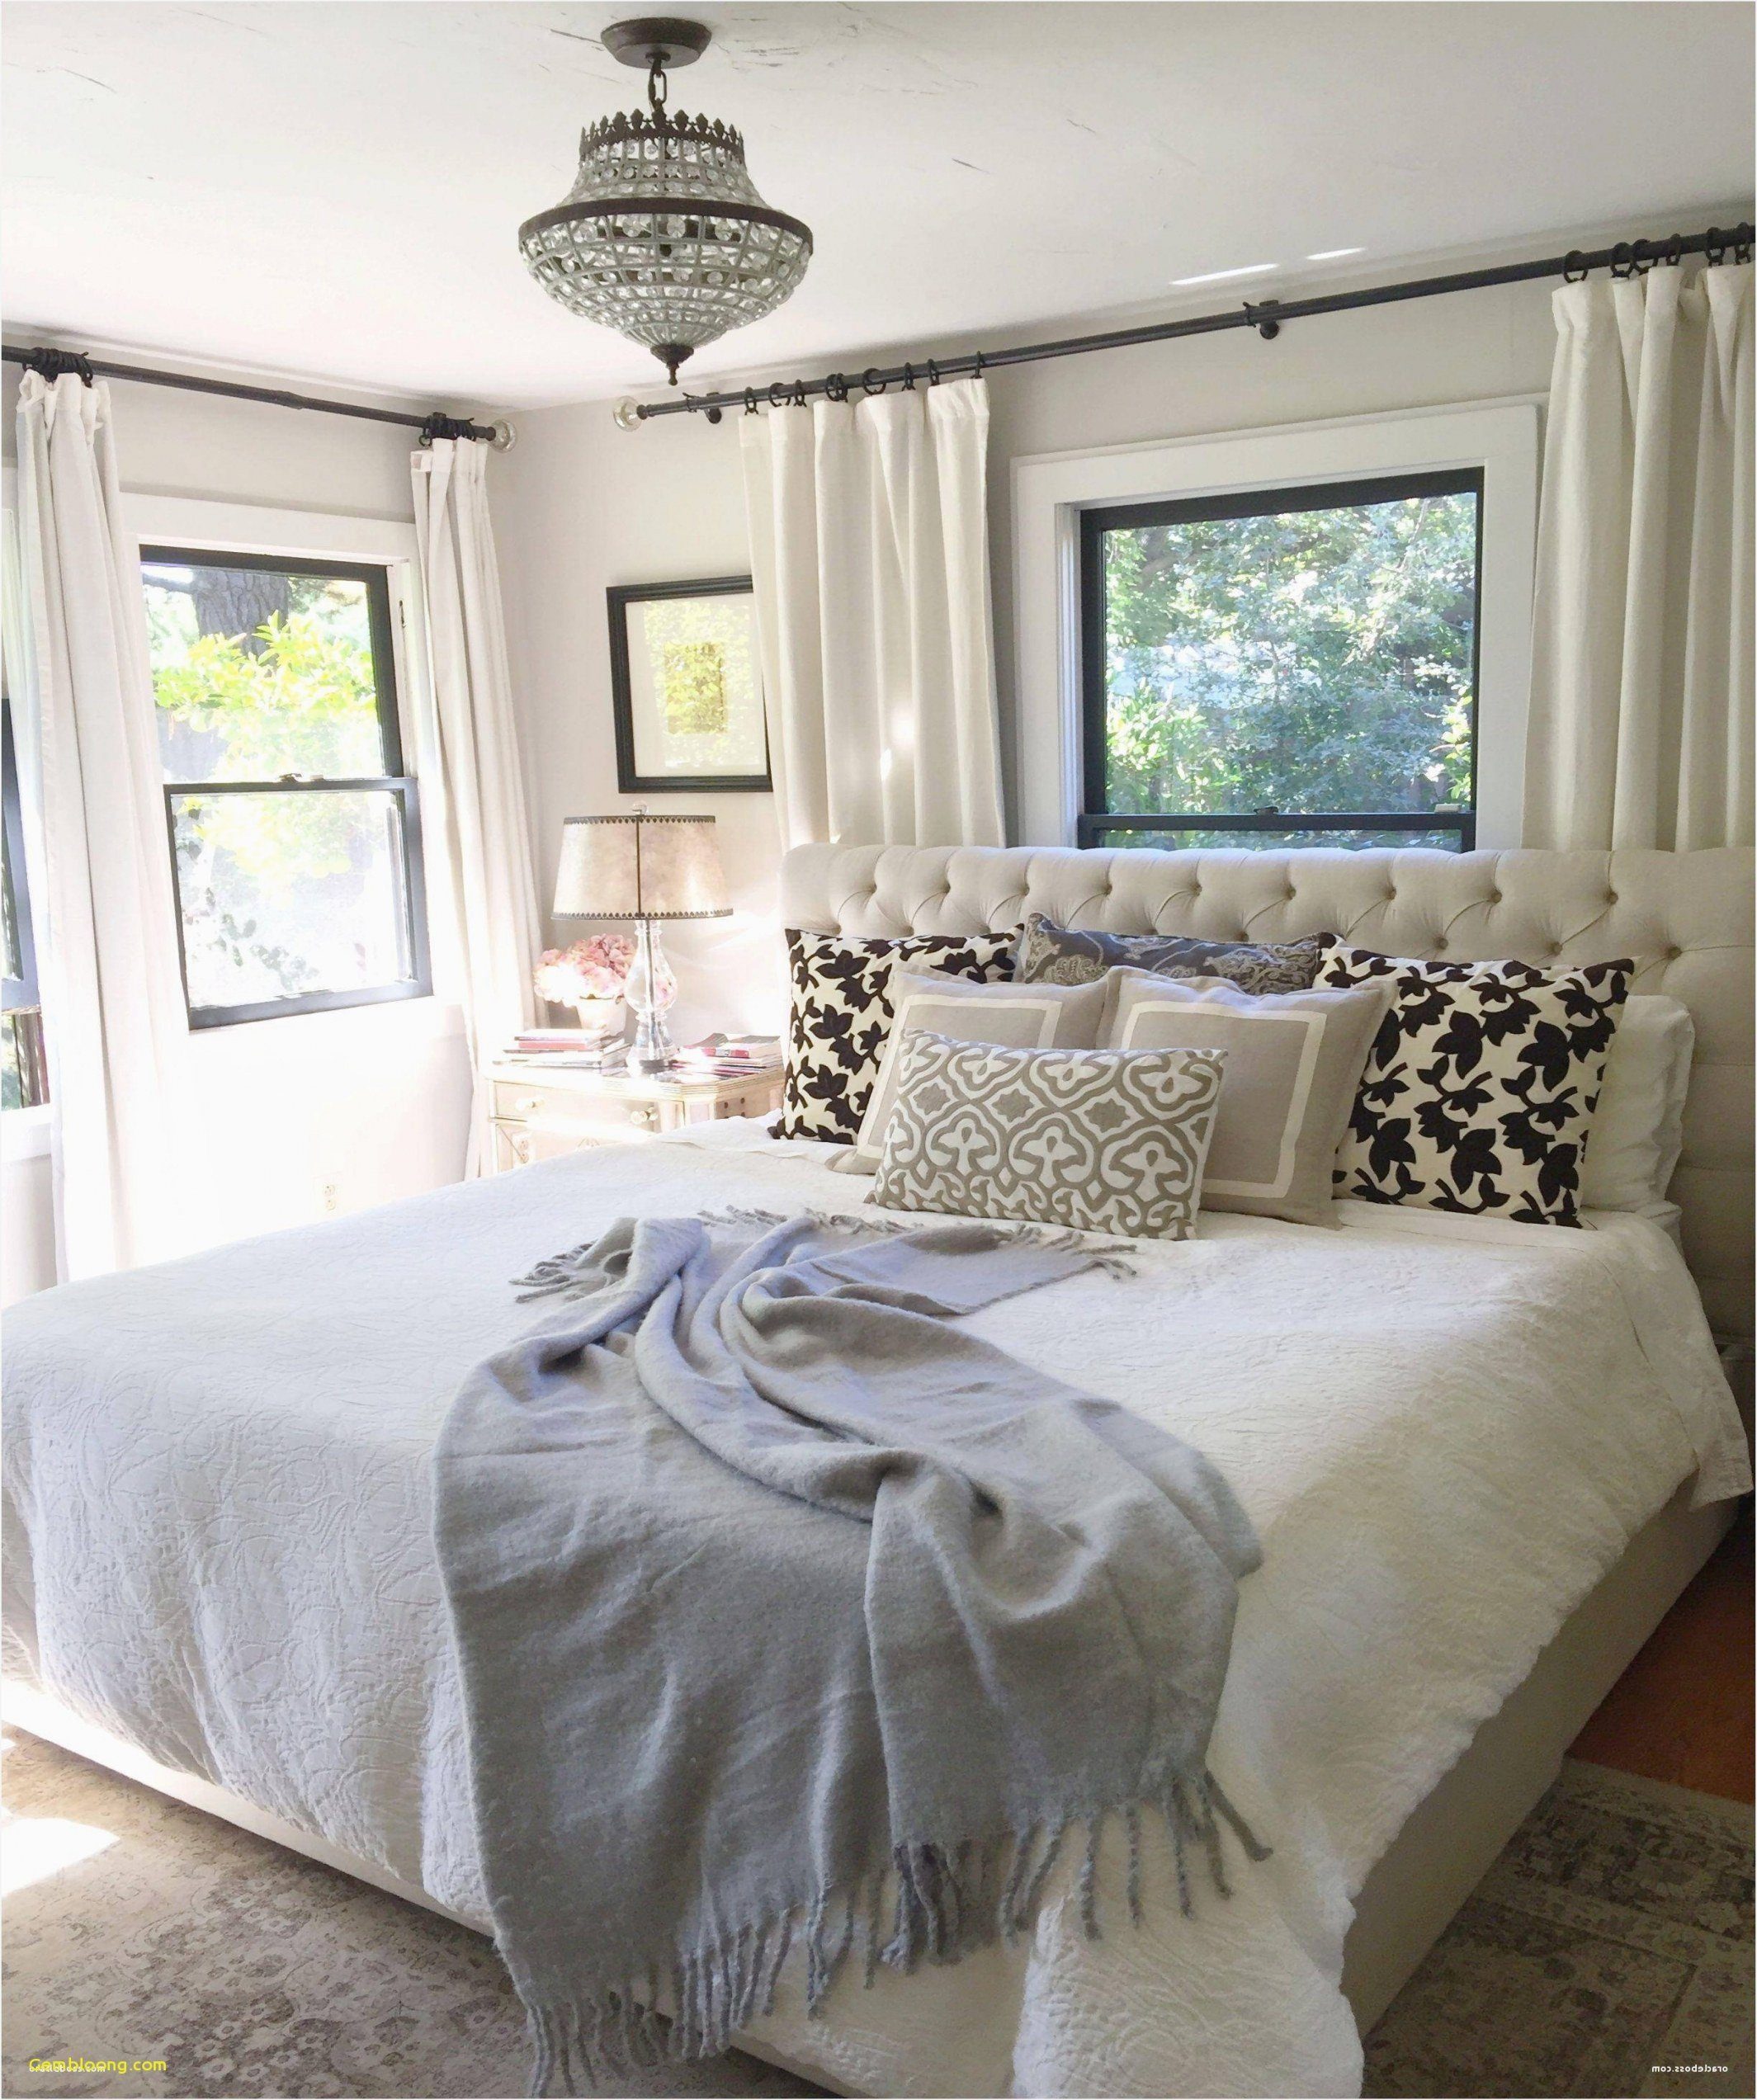 Black and White Teenage Bedroom Awesome Teen Girls Bedroom Ideas 43 Lovely Teenage Girl Bedroom